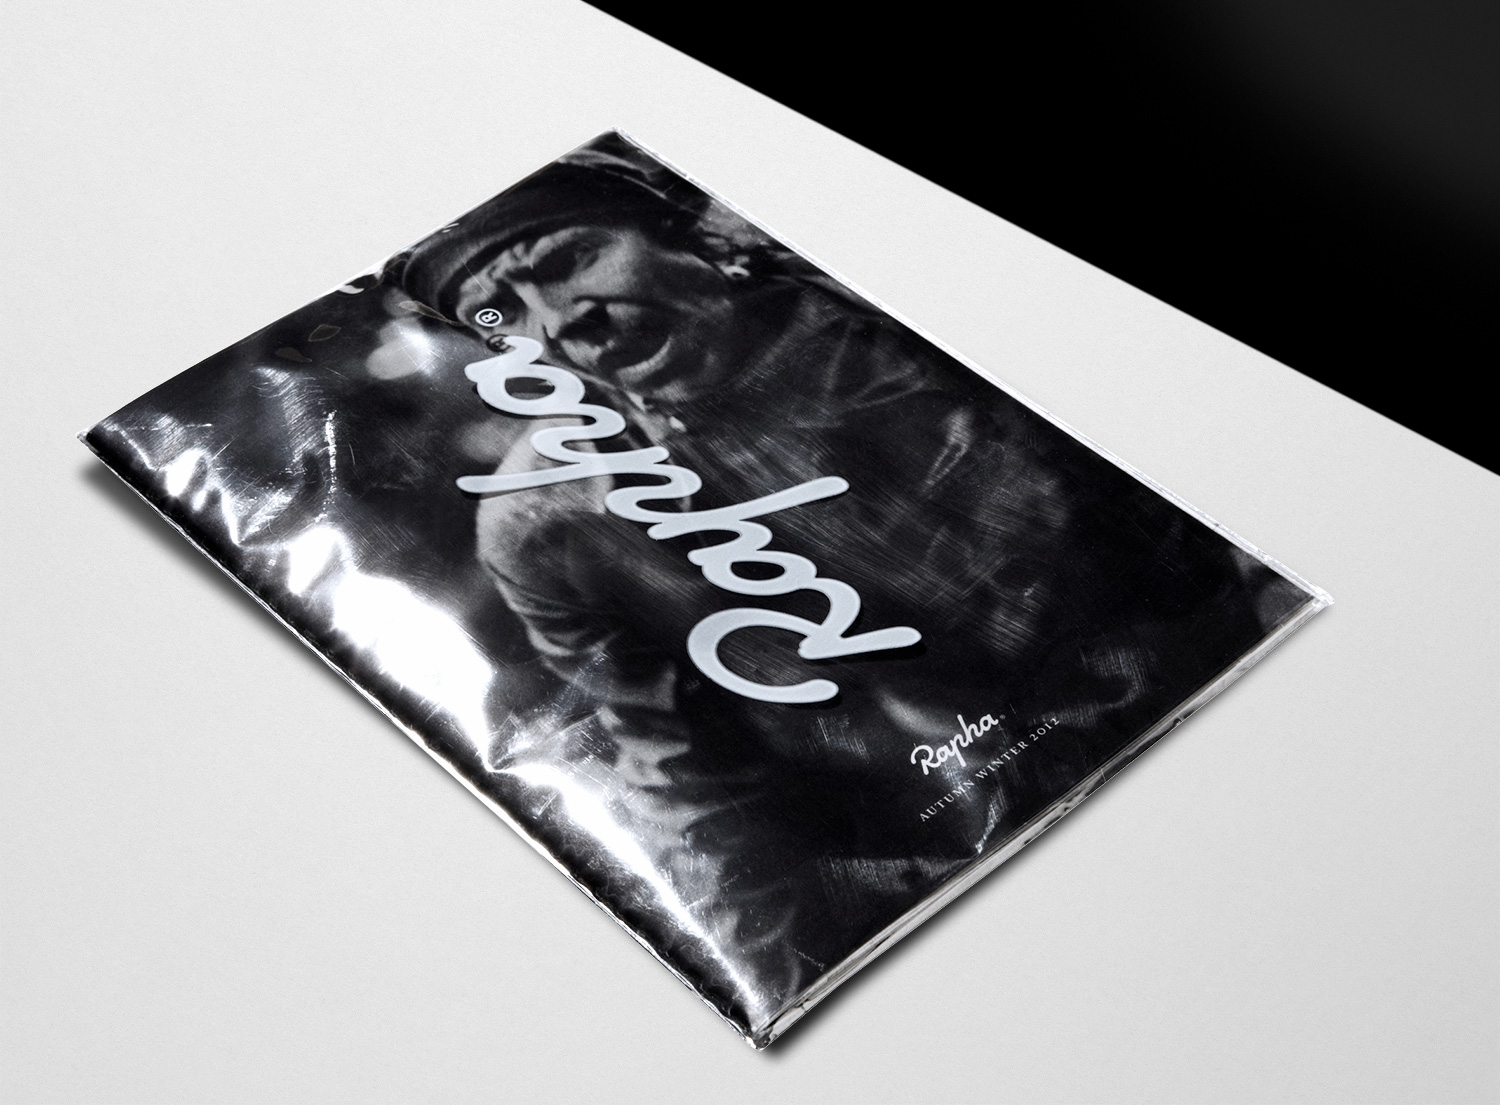 Progress Packaging Rapha Racing Enveloped Ecommerce Retail Plastics Metailsed Print Cycling